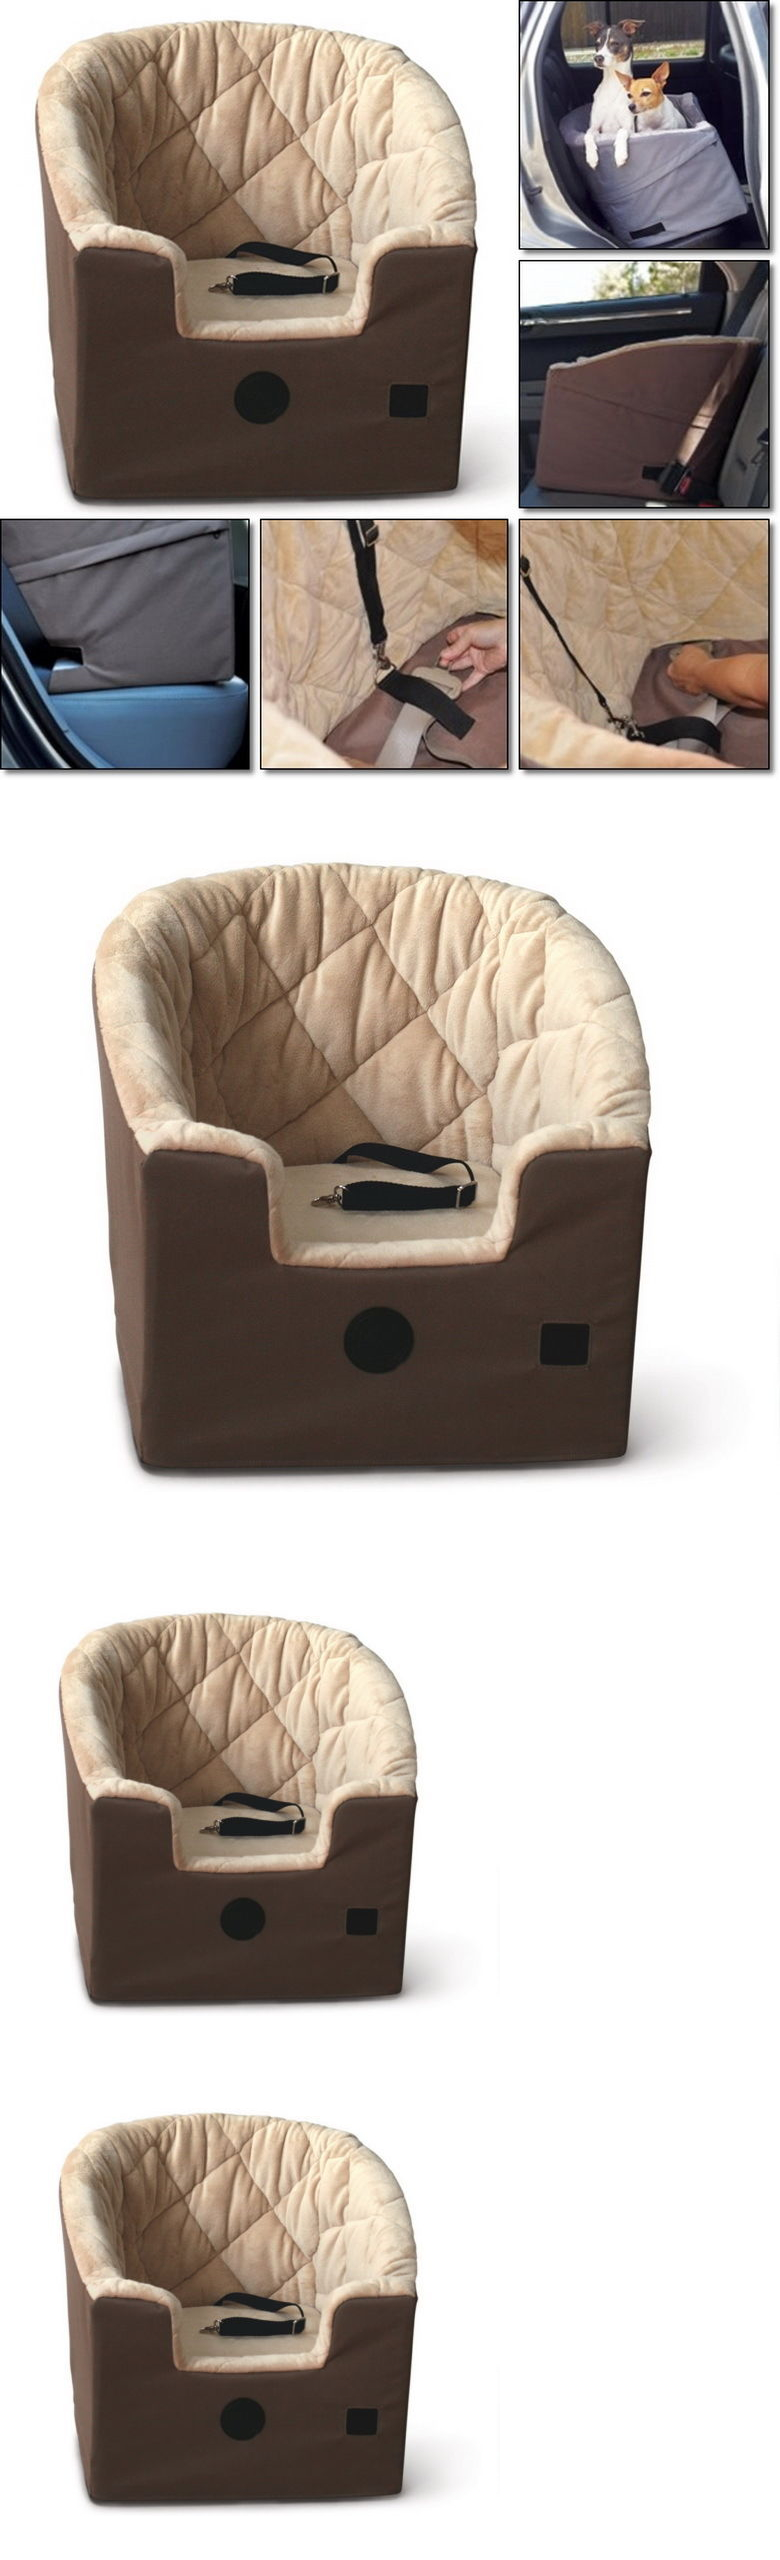 Car seats and barriers pets dog cat bed booster carry car